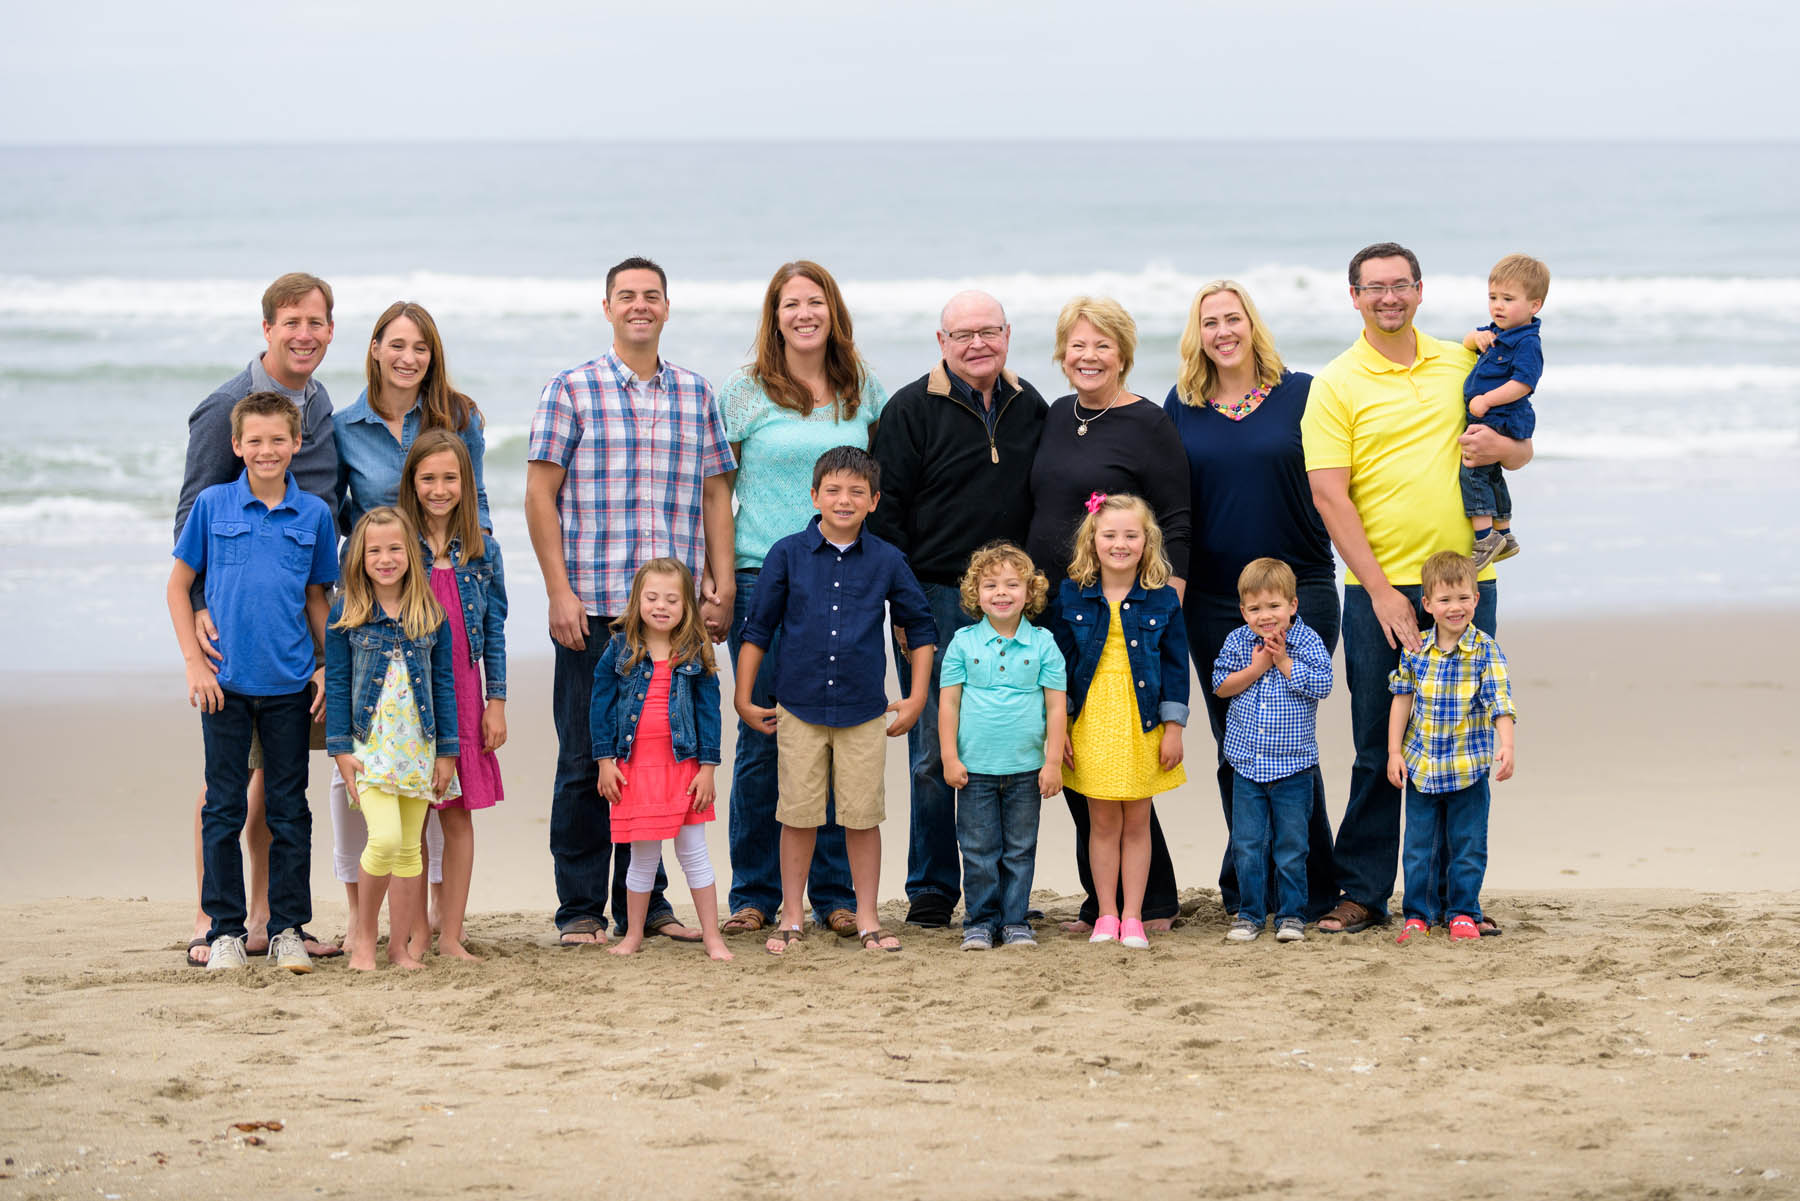 0087_d810a_Kristen_L_Pajaro_Dunes_Multi-Generation_Family_Photography.jpg